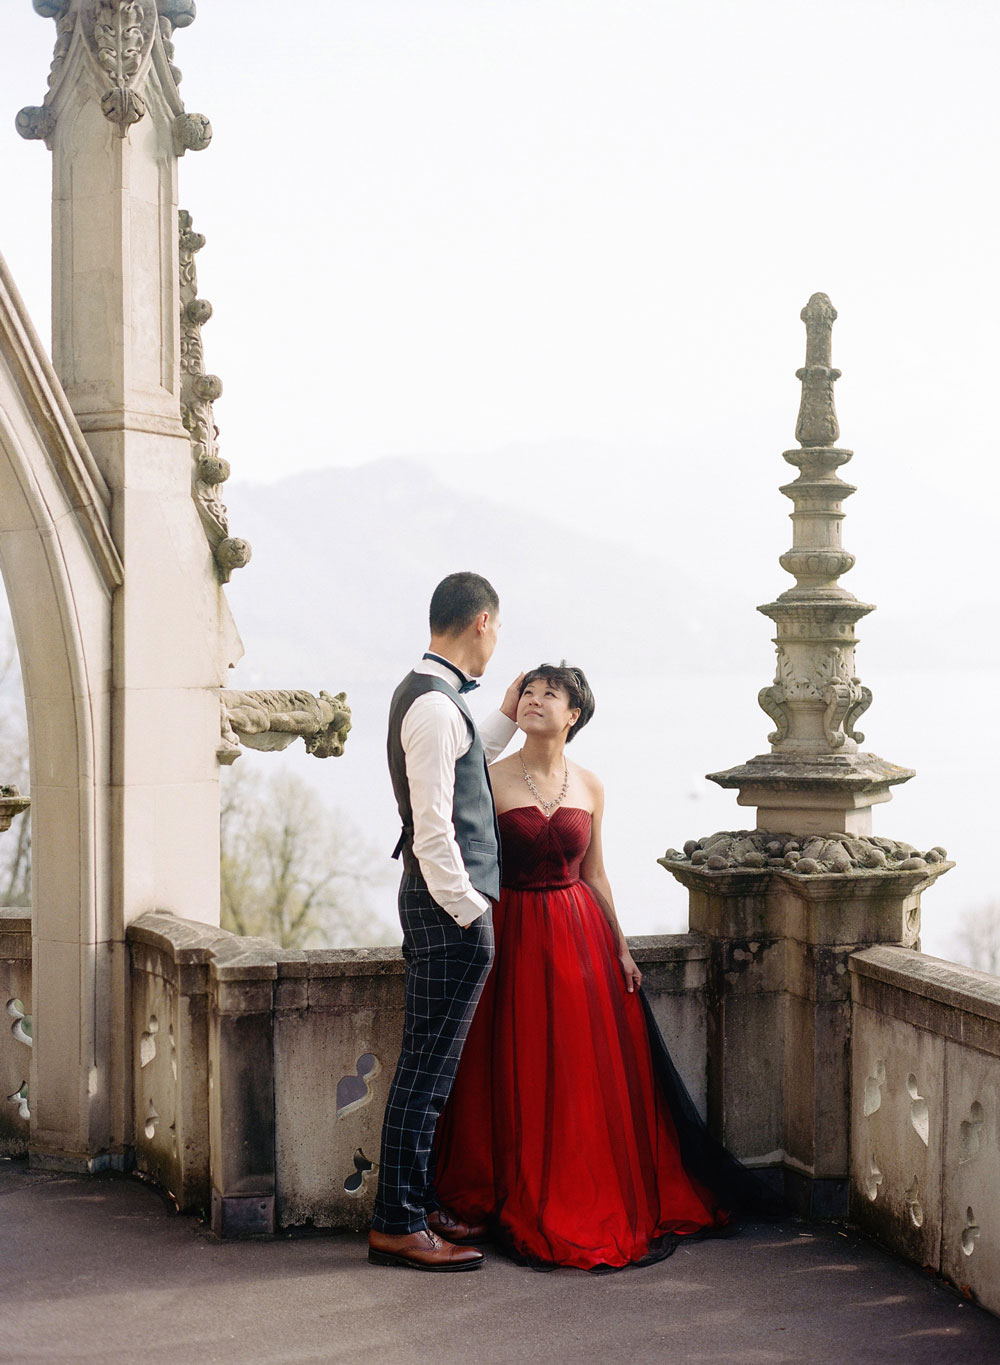 Minnie-William-prewedding-pictures-Interlaken-Luzern-9.jpg